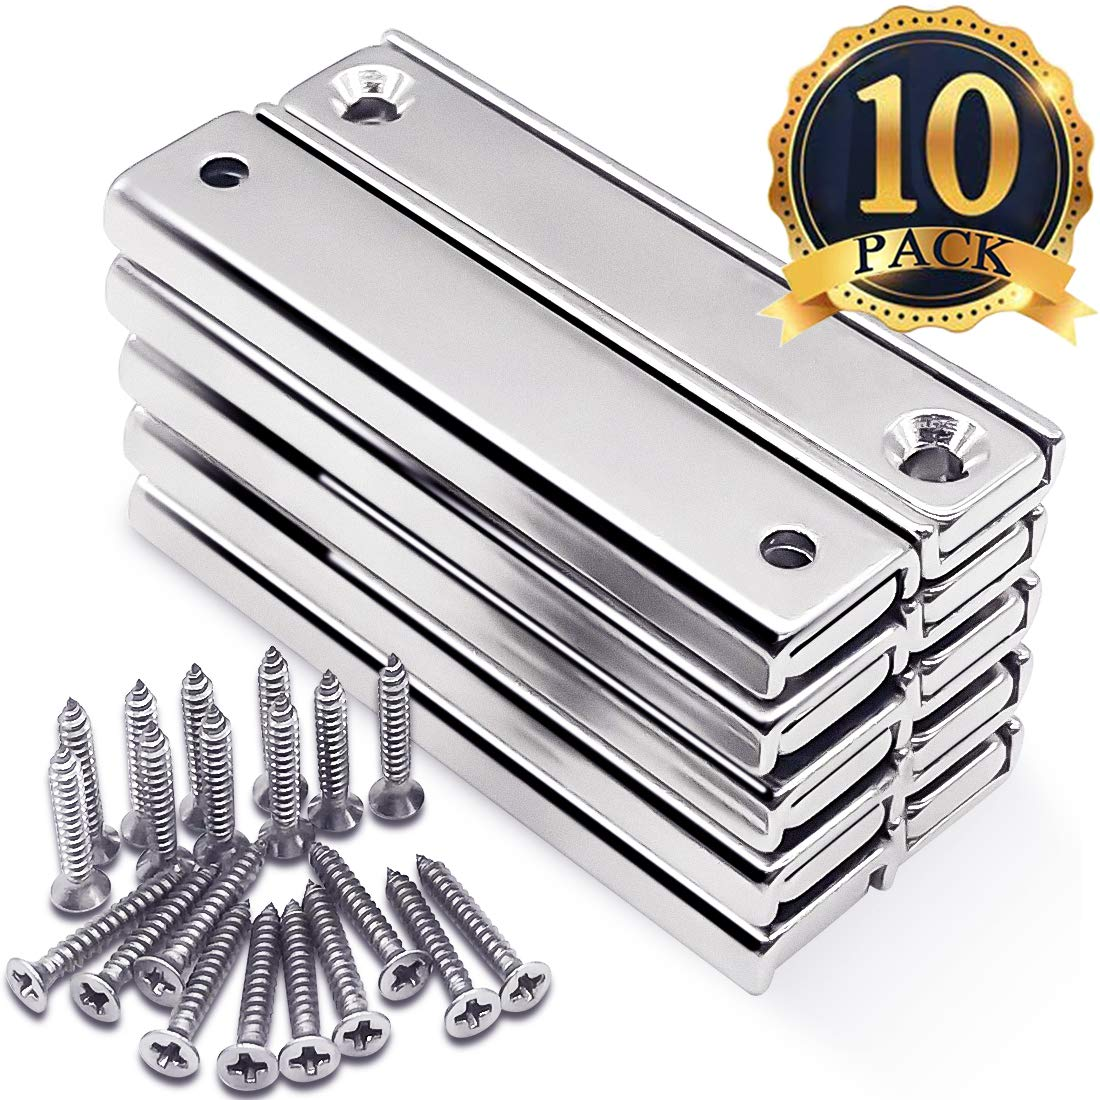 FINDMAG Strong Neodymium Rectangular Pot Magnets with Counter Bore, Countersunk Hole Bar Magnets with Mounting Screws - 60x13.5x5mm, Pack of 10